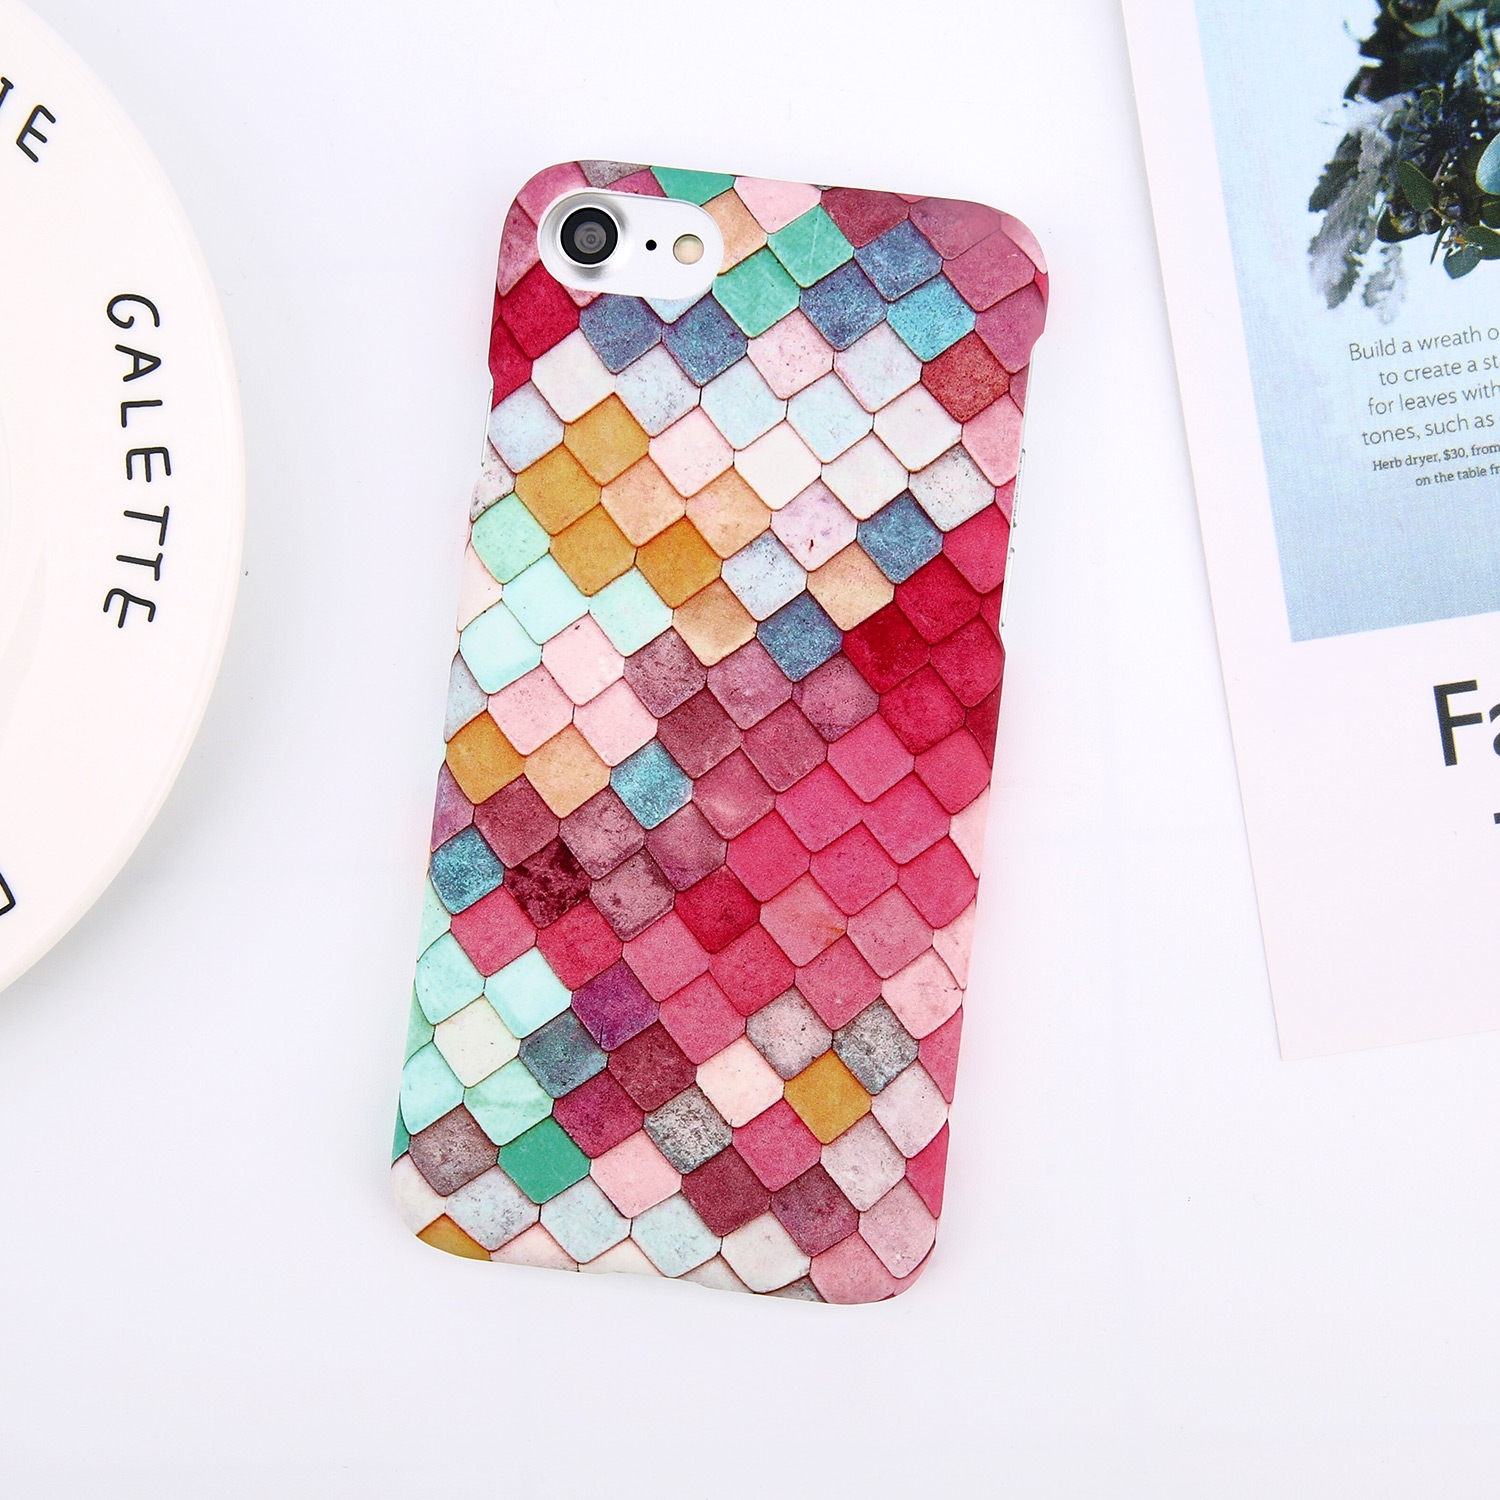 Moskado For iphone 7 XS MAX XR X Leaves Pineapple Phone Case For iphone 8 7 6 6s Plus 5 5s Flower Geometric Cases Hard PC Cover